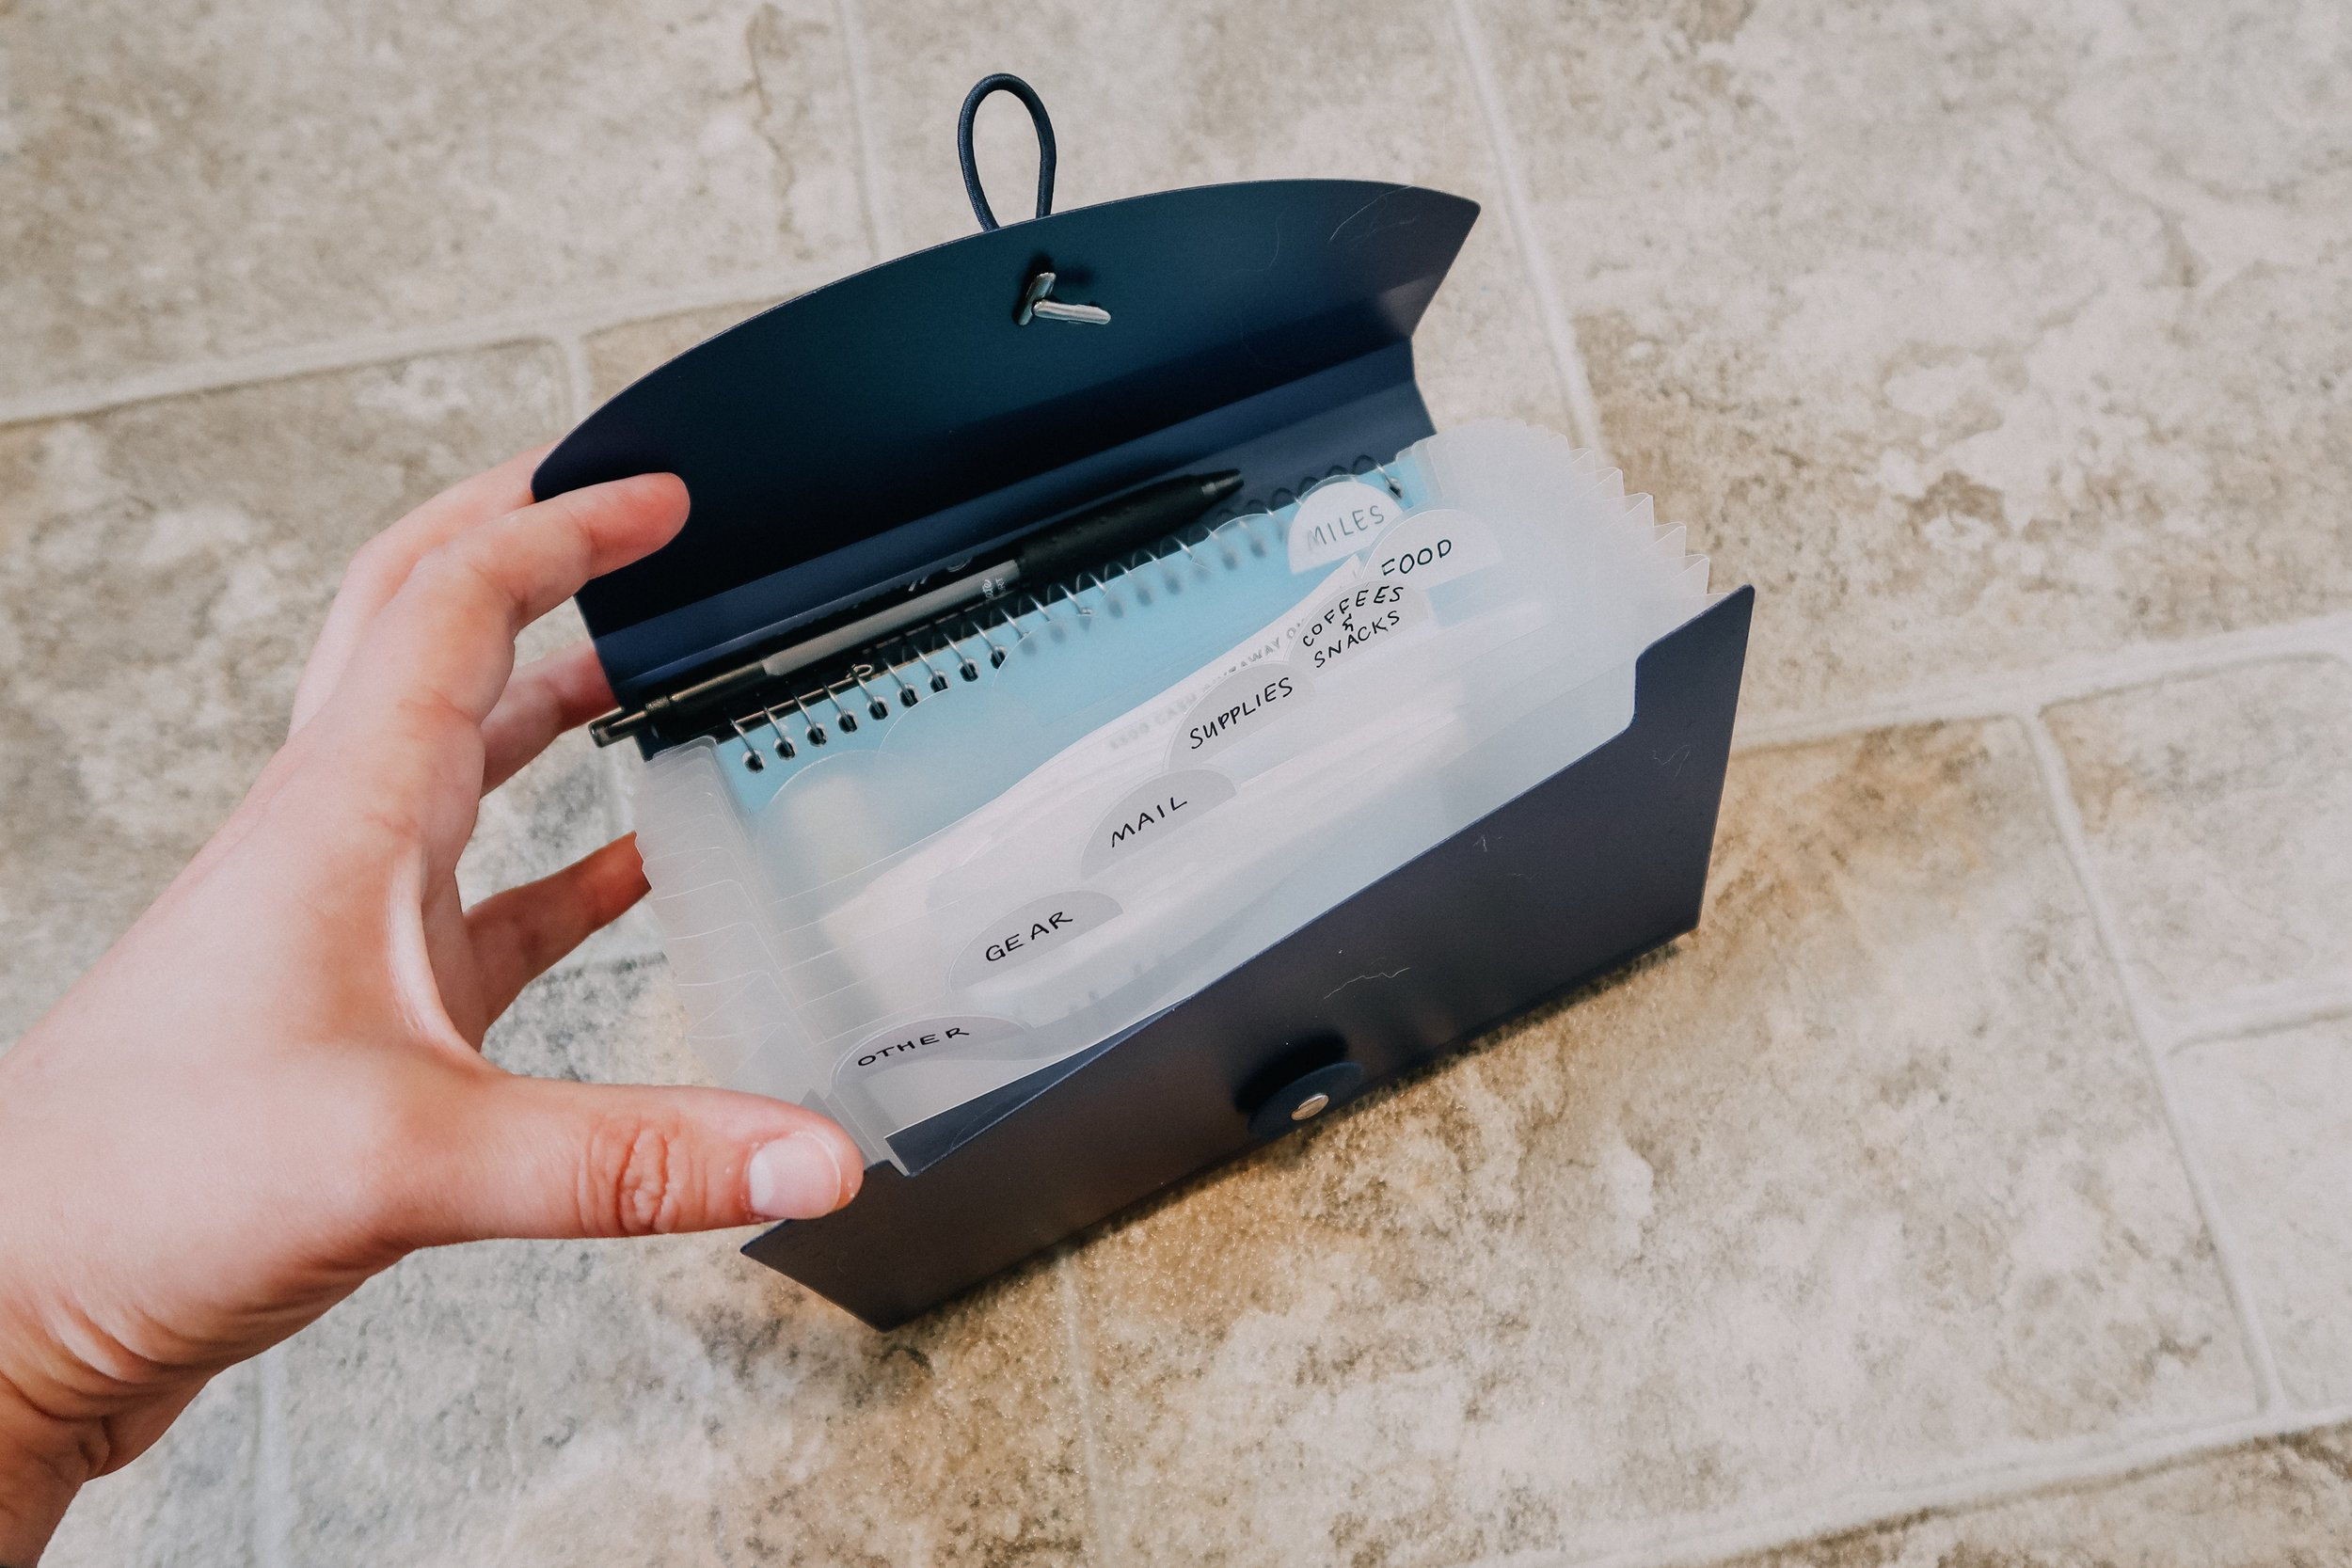 Accordion file organizer for receipts and documents needed for taxes